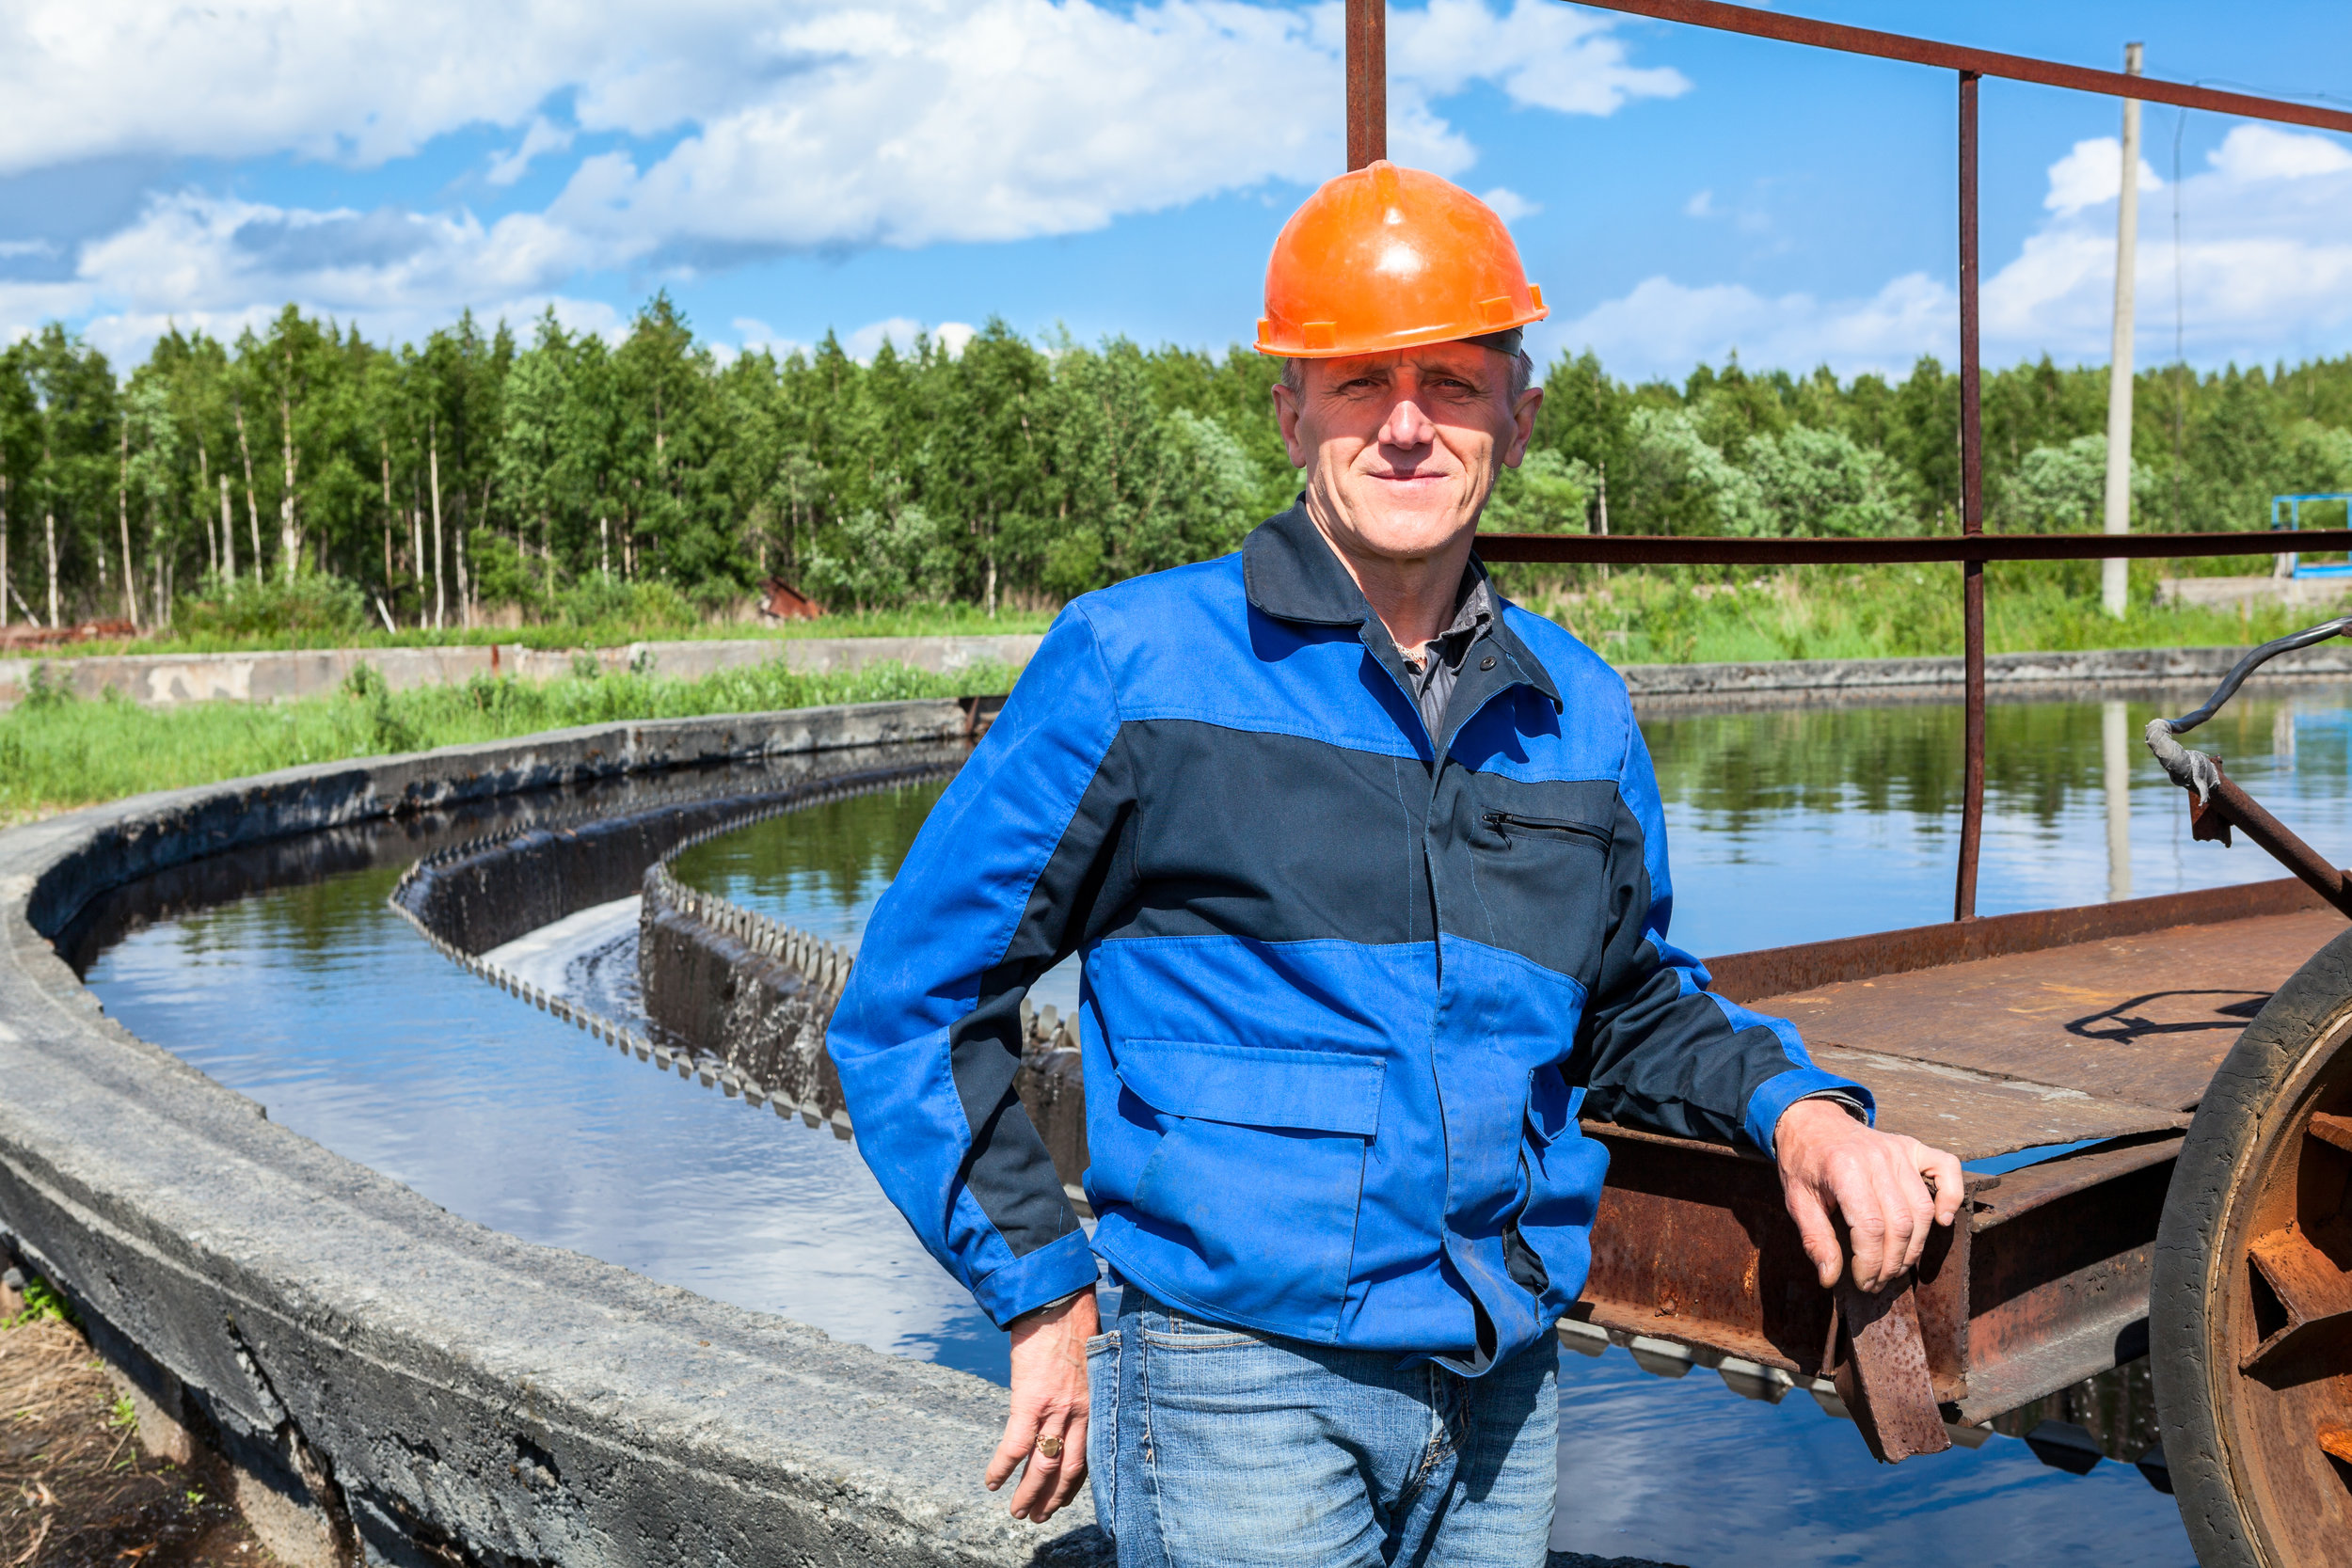 Why Delta Operations?    Delta Operations currently operates over 40 water and wastewater systems. We offer DEQ certified operators, skilled field technicians, and a trained staff to service all of your water monitoring needs. Delta has been serving our customers for over 35 years.   ABOUT US